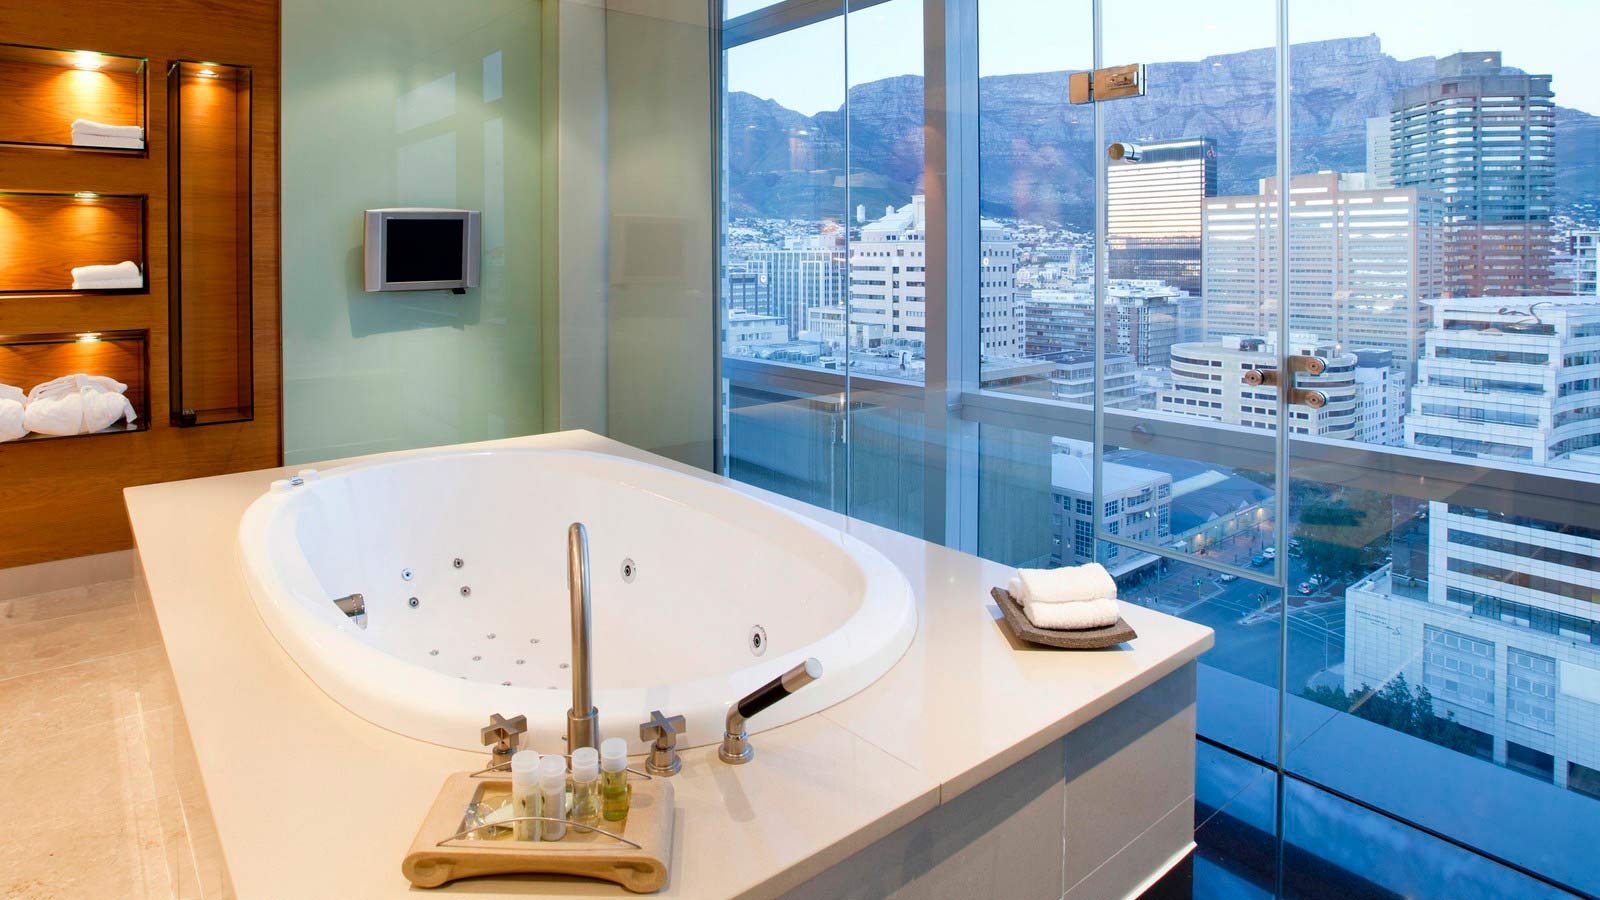 Westin Cape Town Presidential Suite Bath with city view of Cape Town and Table Mountain